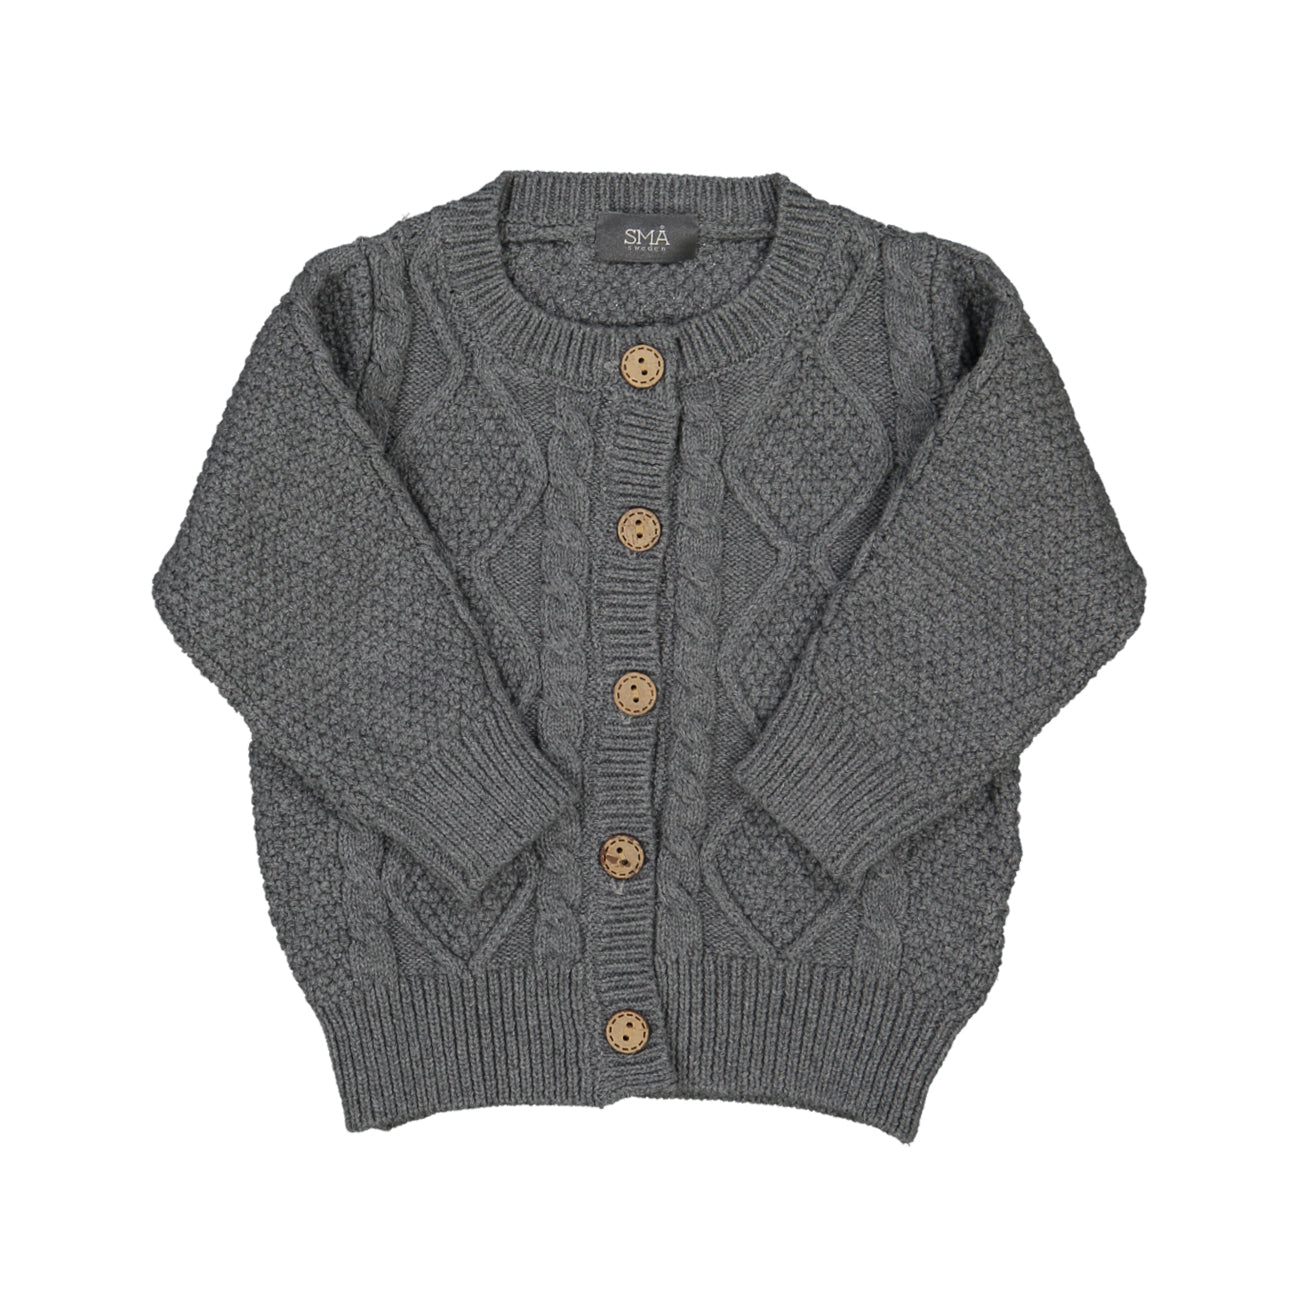 ZORRO knitted cardigan